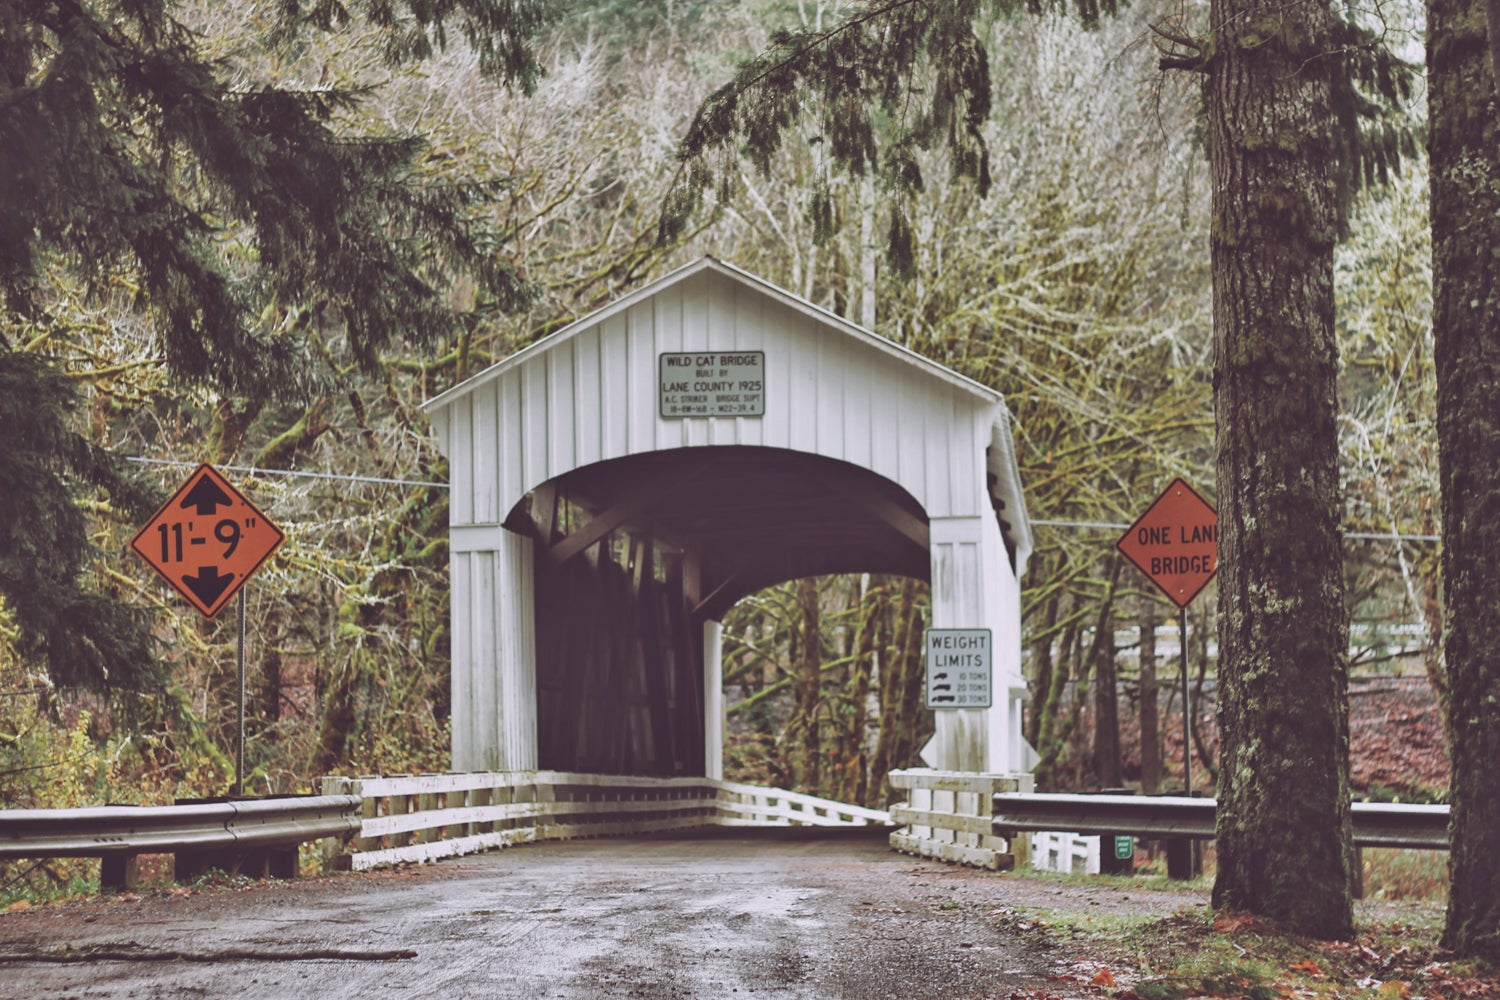 One of the covered bridges in Oregon's Lane County